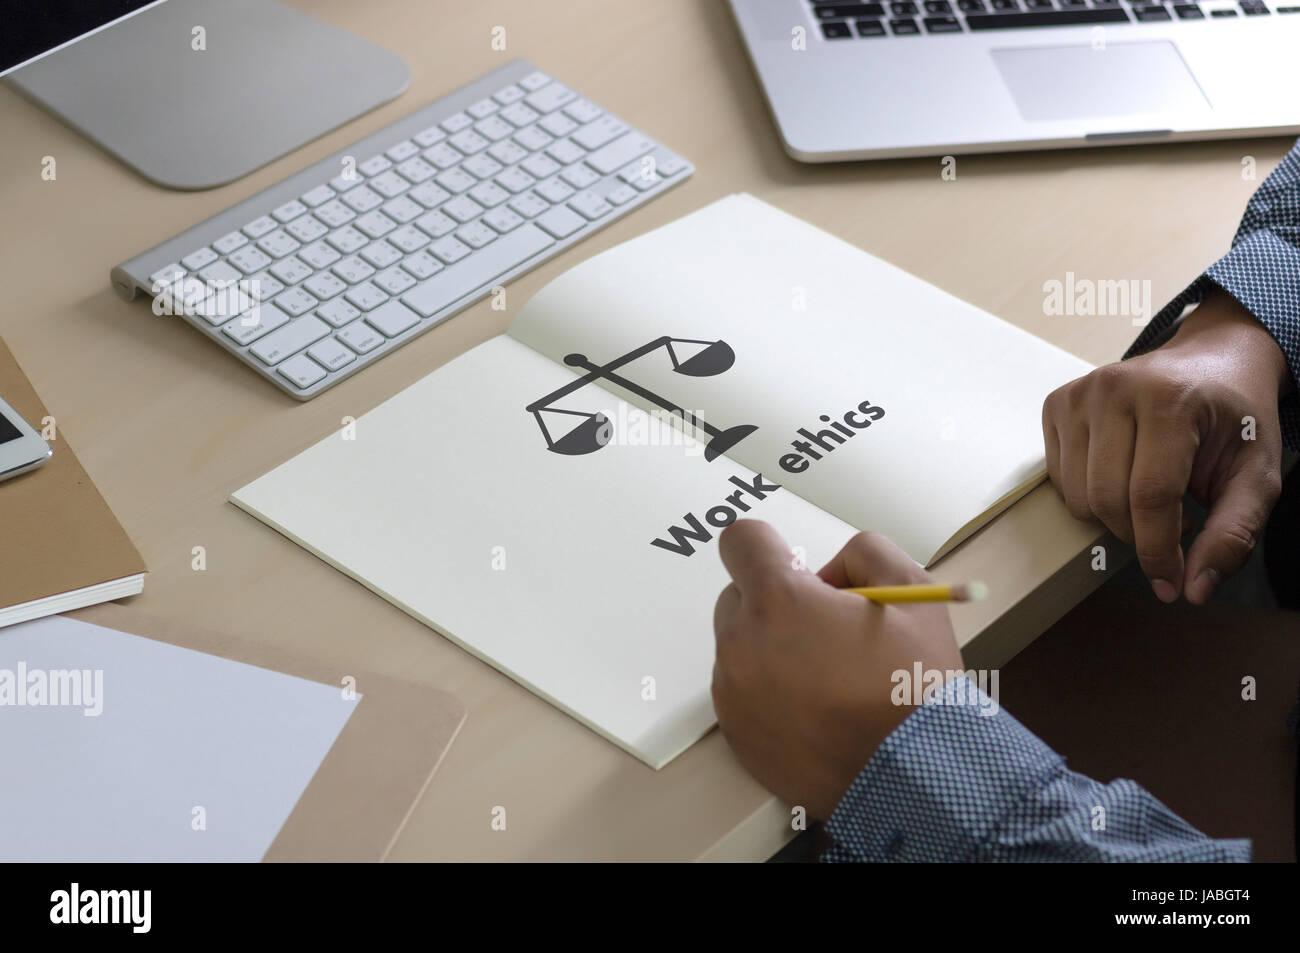 Work ethics Justice Law Order Legal working Professional - Stock Image